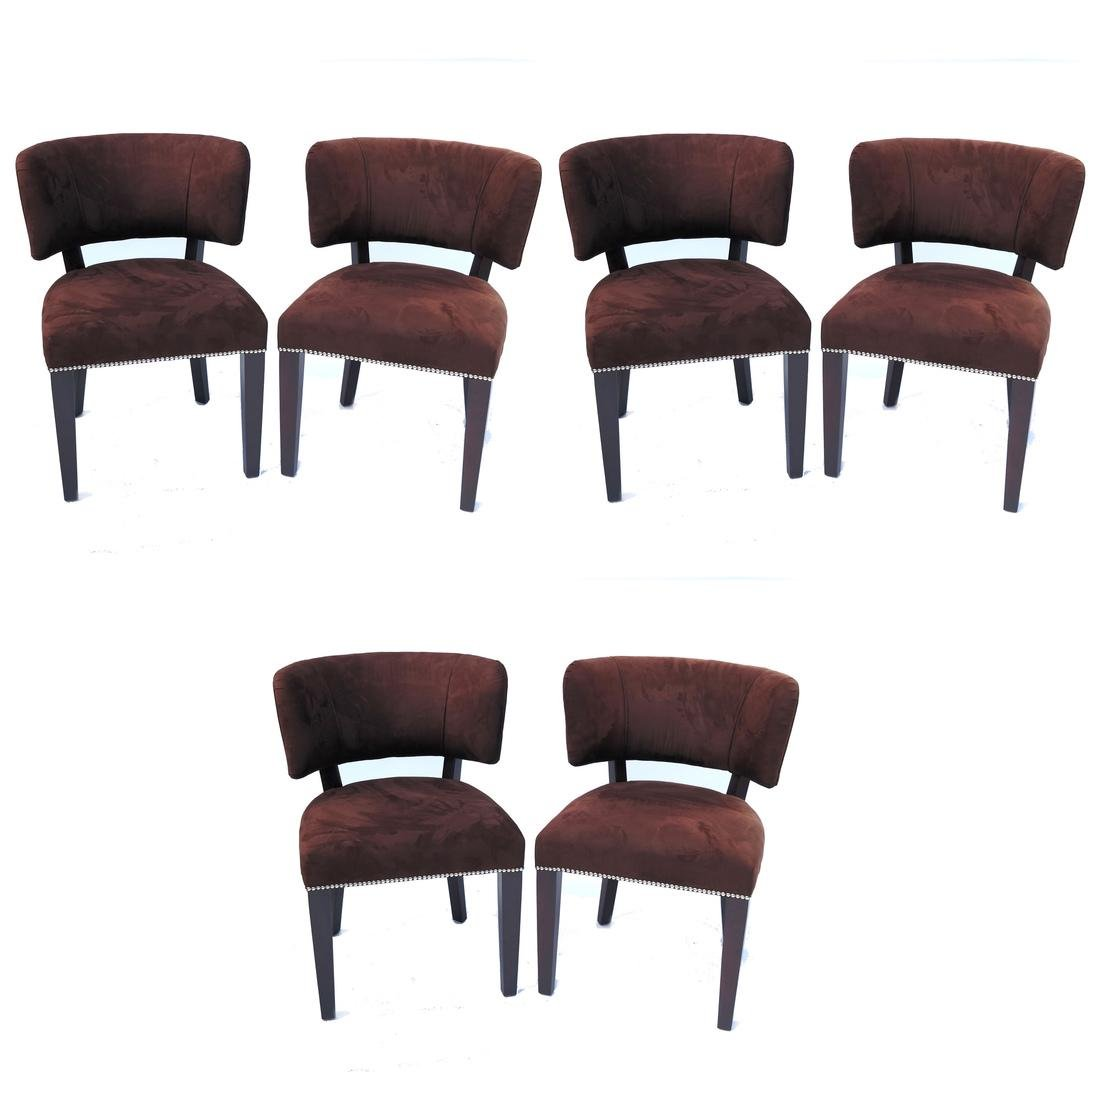 Set of 6 Ralph Lauren Dining Chairs by Cliff House